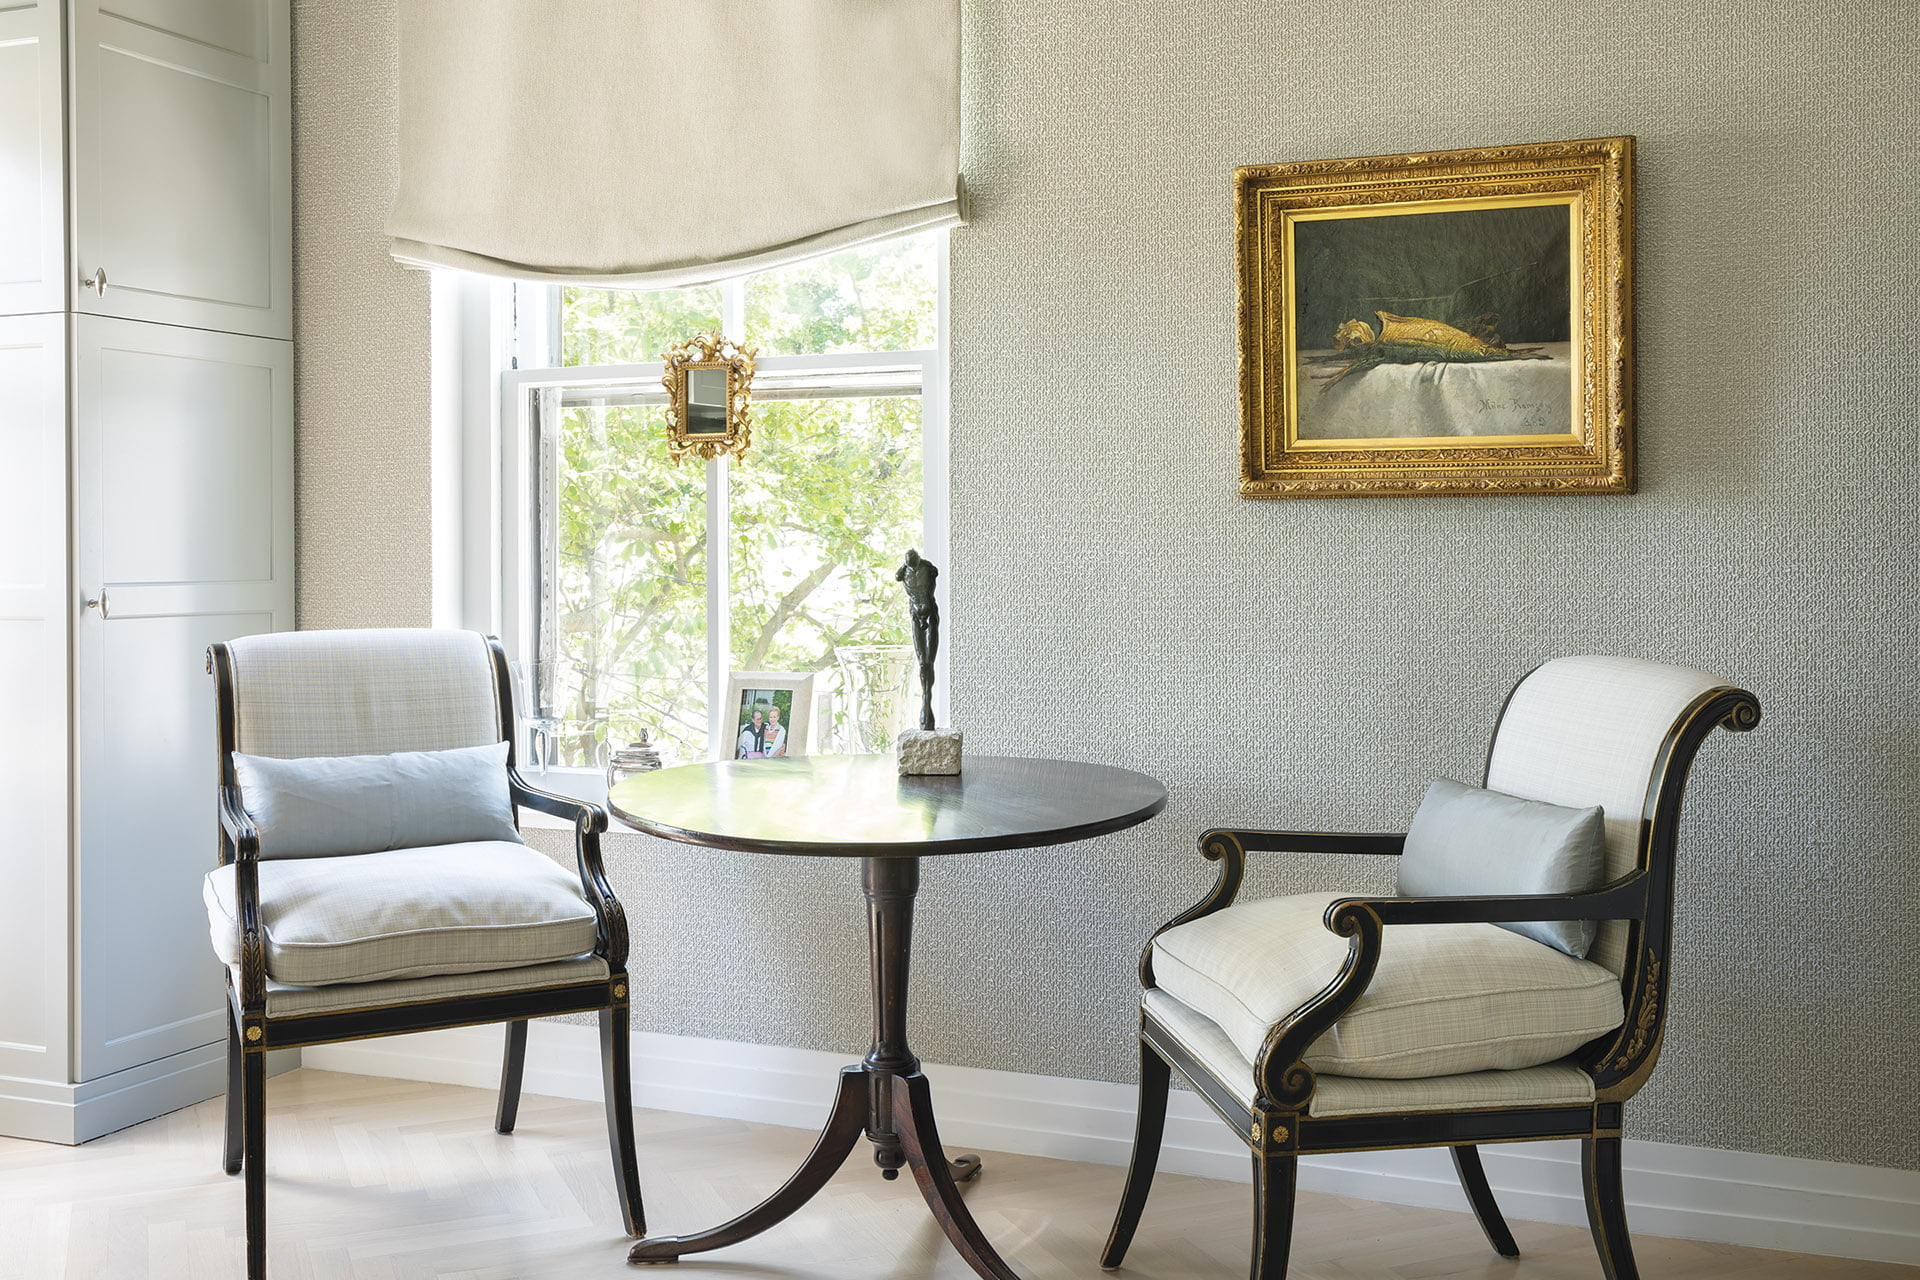 Breakfast nook with mahogany tilt table and armchairs from the Regency period